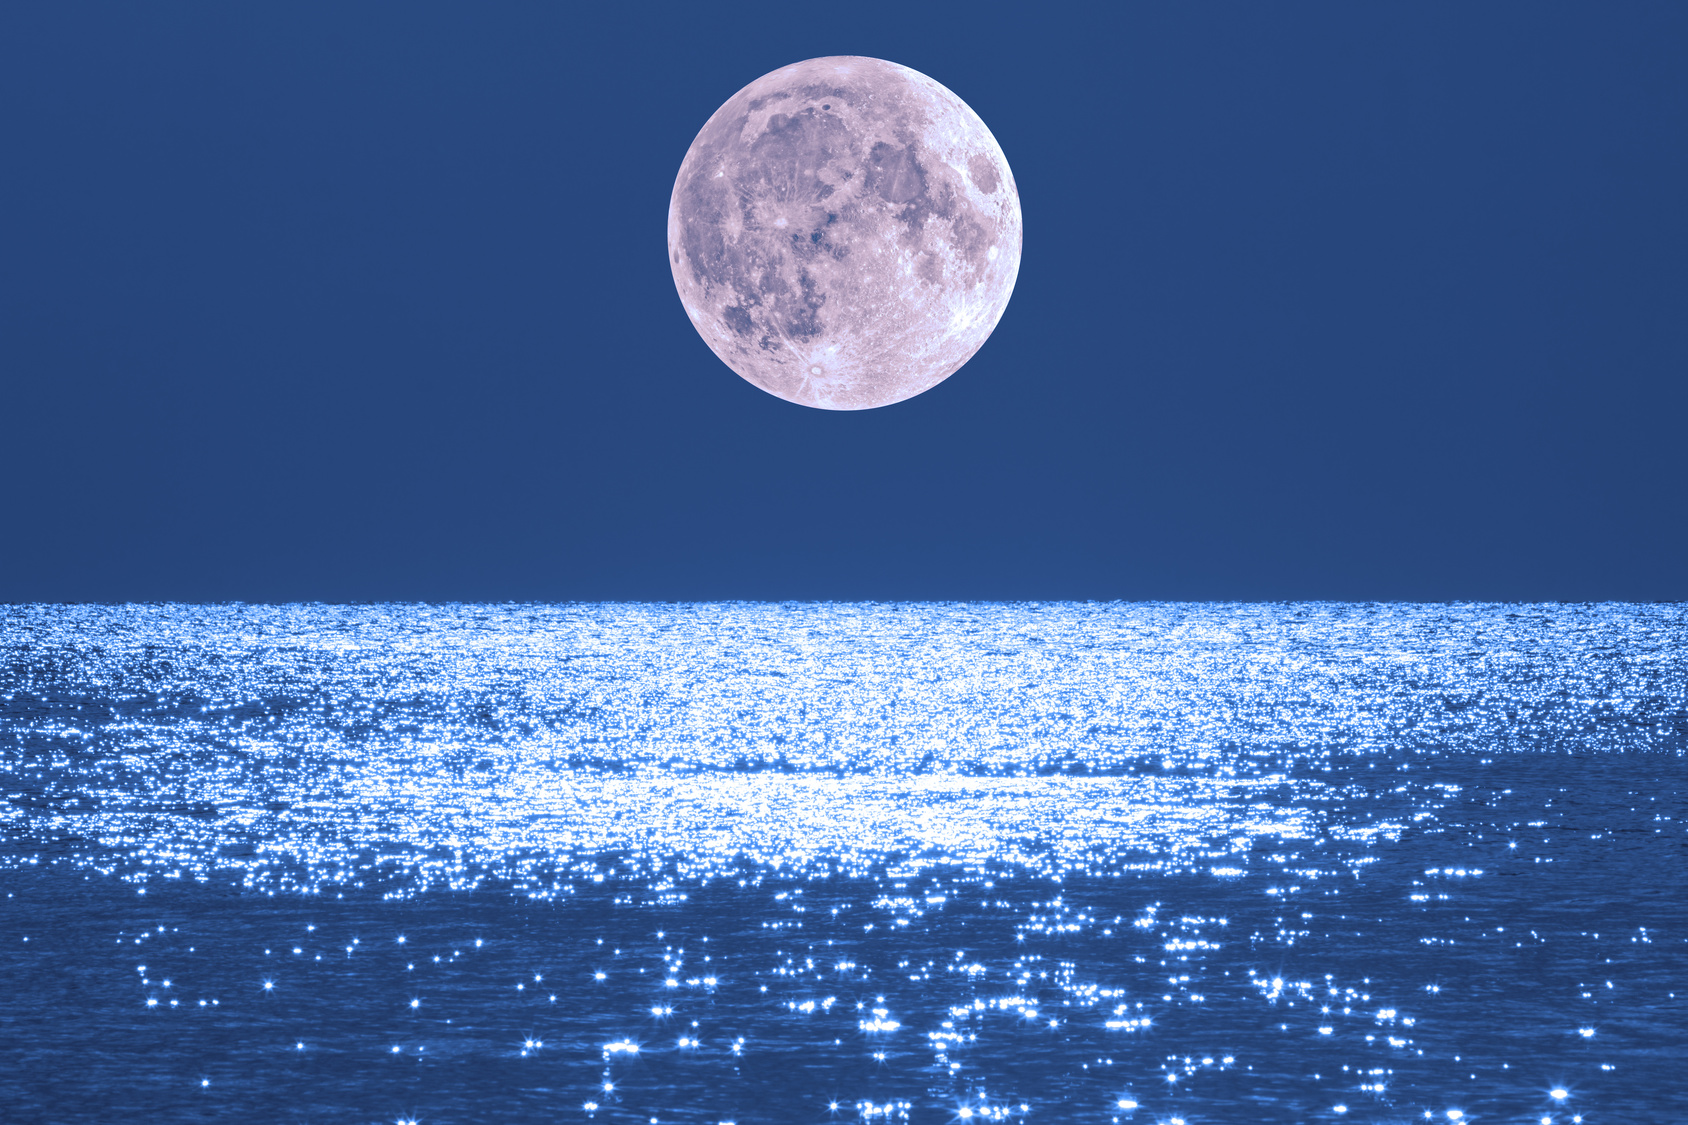 Moonrise over ocean/sea horizon. My work. No elements of NASA or other third party. Moon is my work.